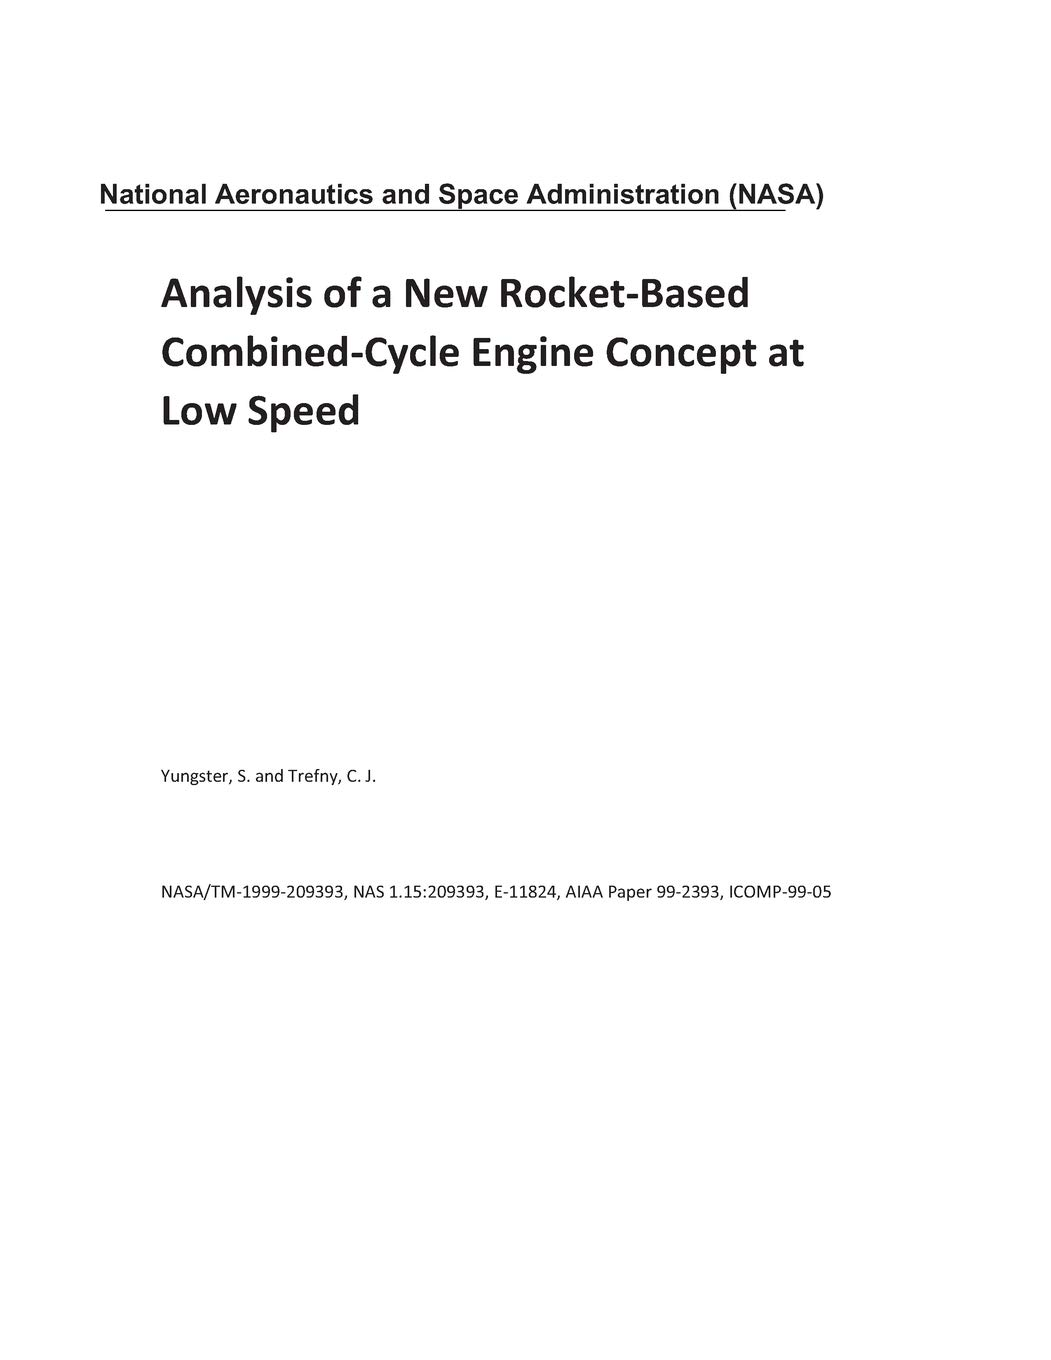 Analysis of a New Rocket-Based Combined-Cycle Engine Concept